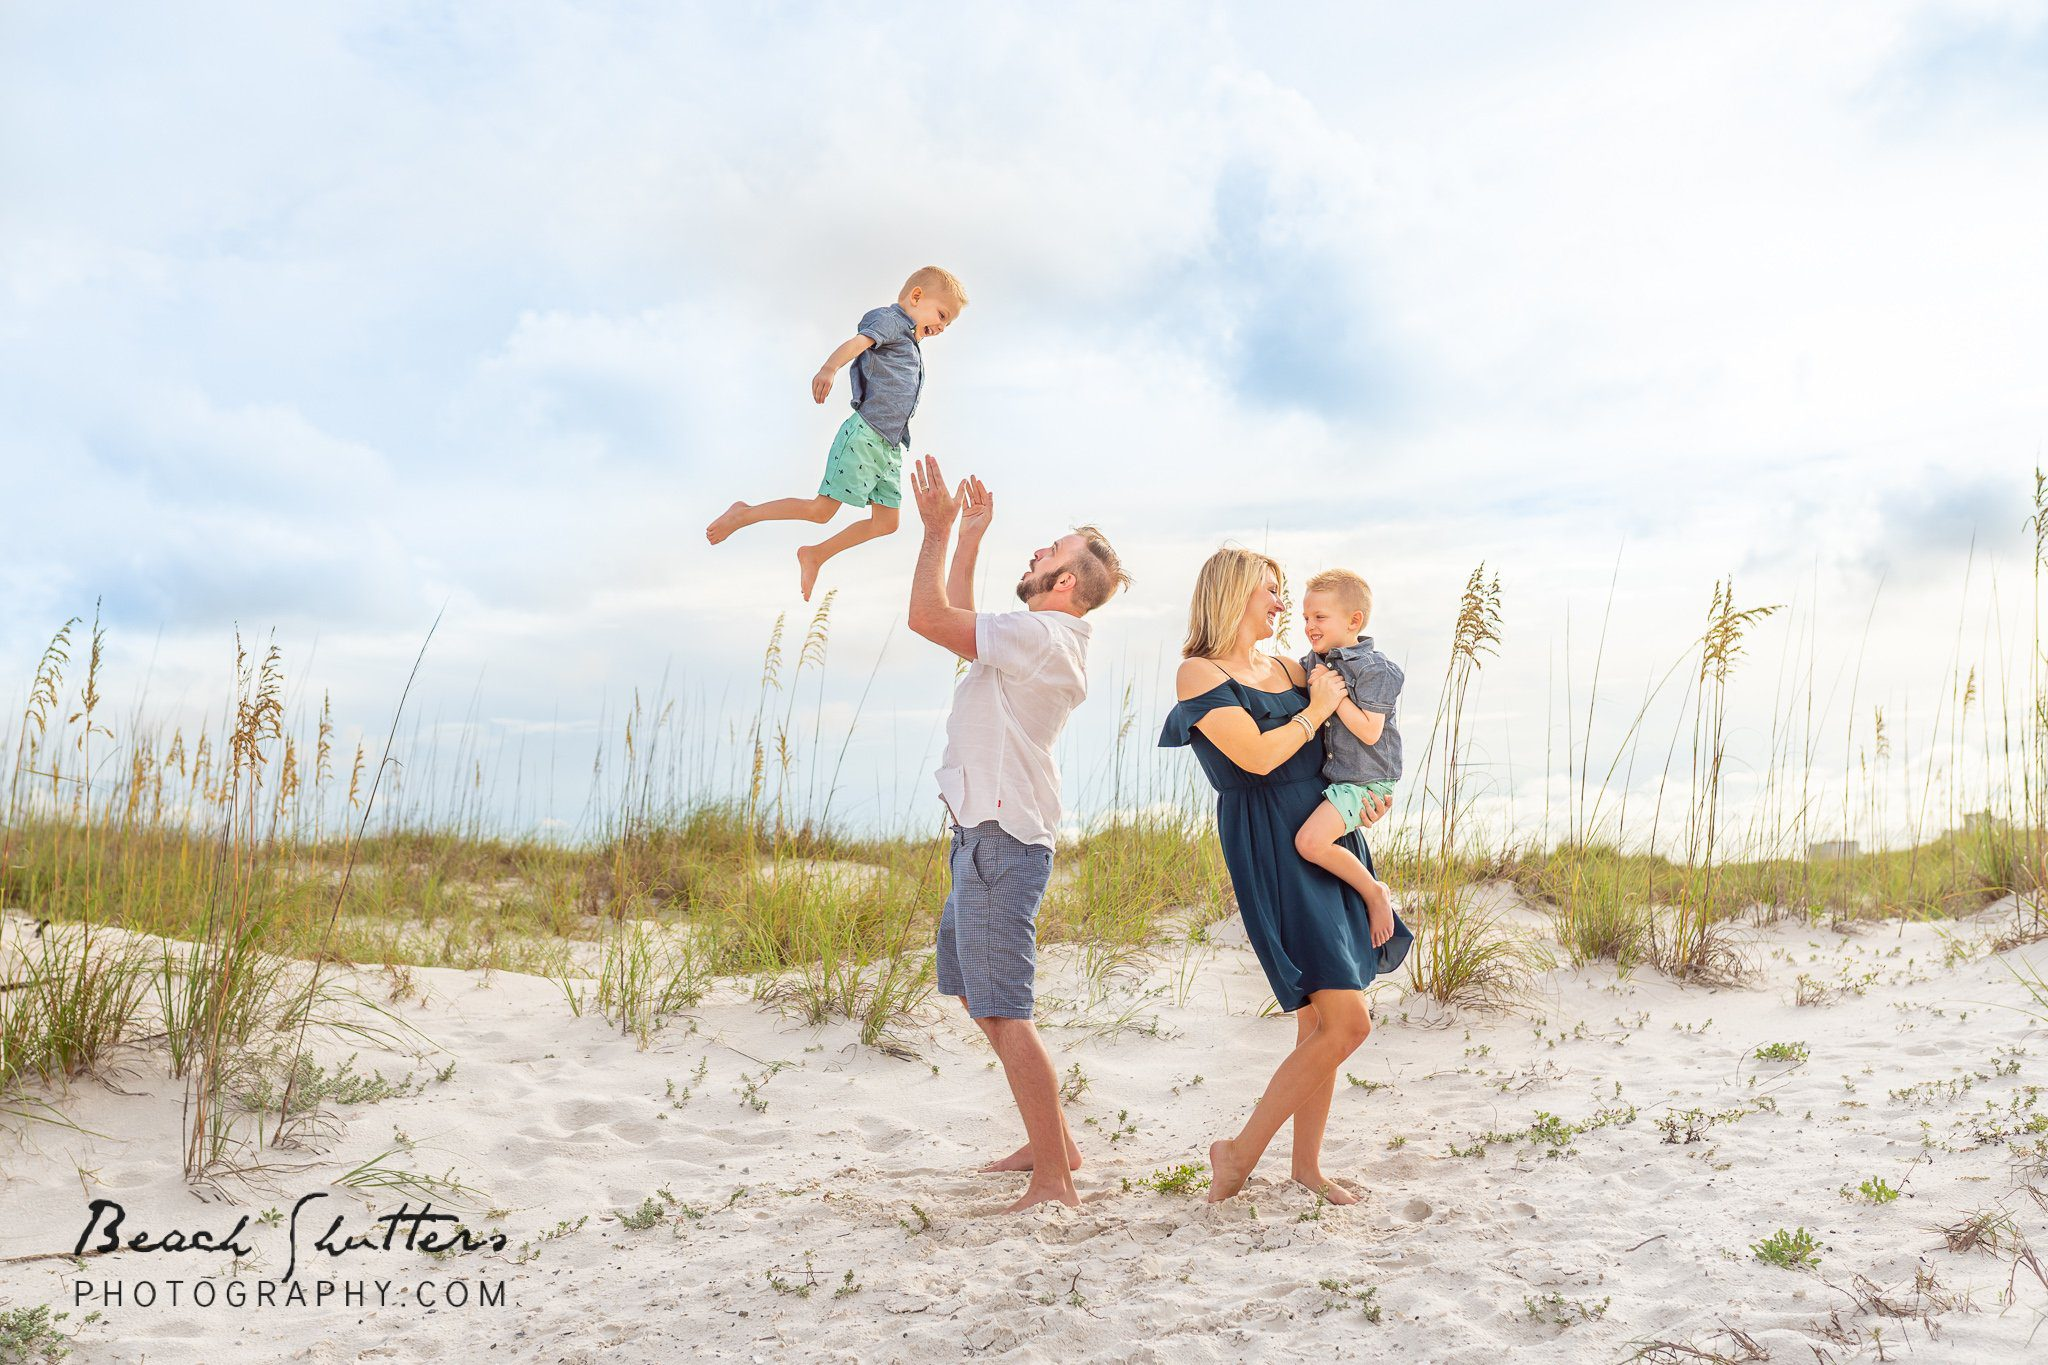 family photo poses at the beach